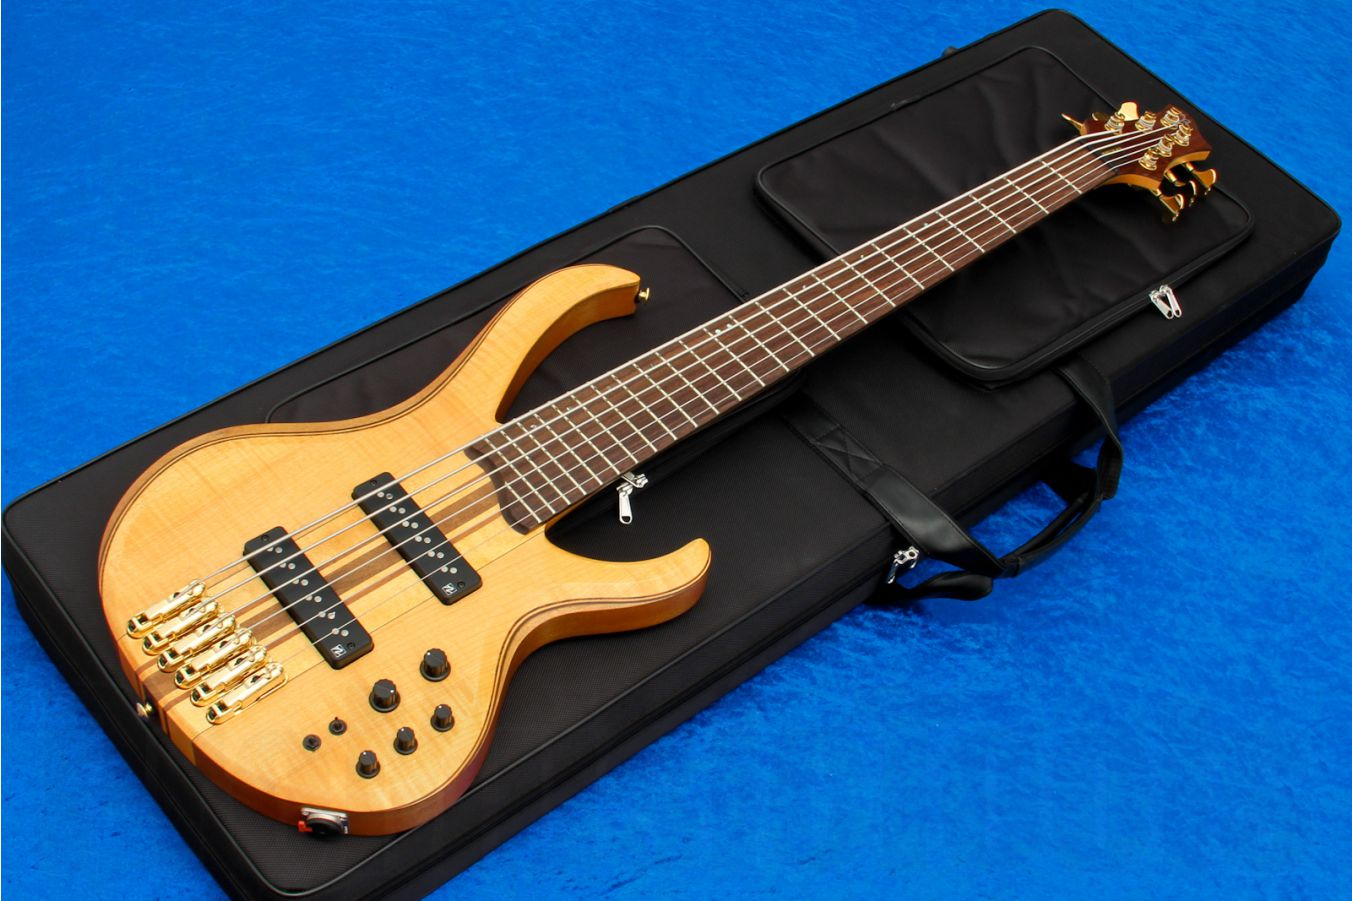 Ibanez BTB1406 VNF Premium - Vintage Natural Flat - b-stock (1x opened box)